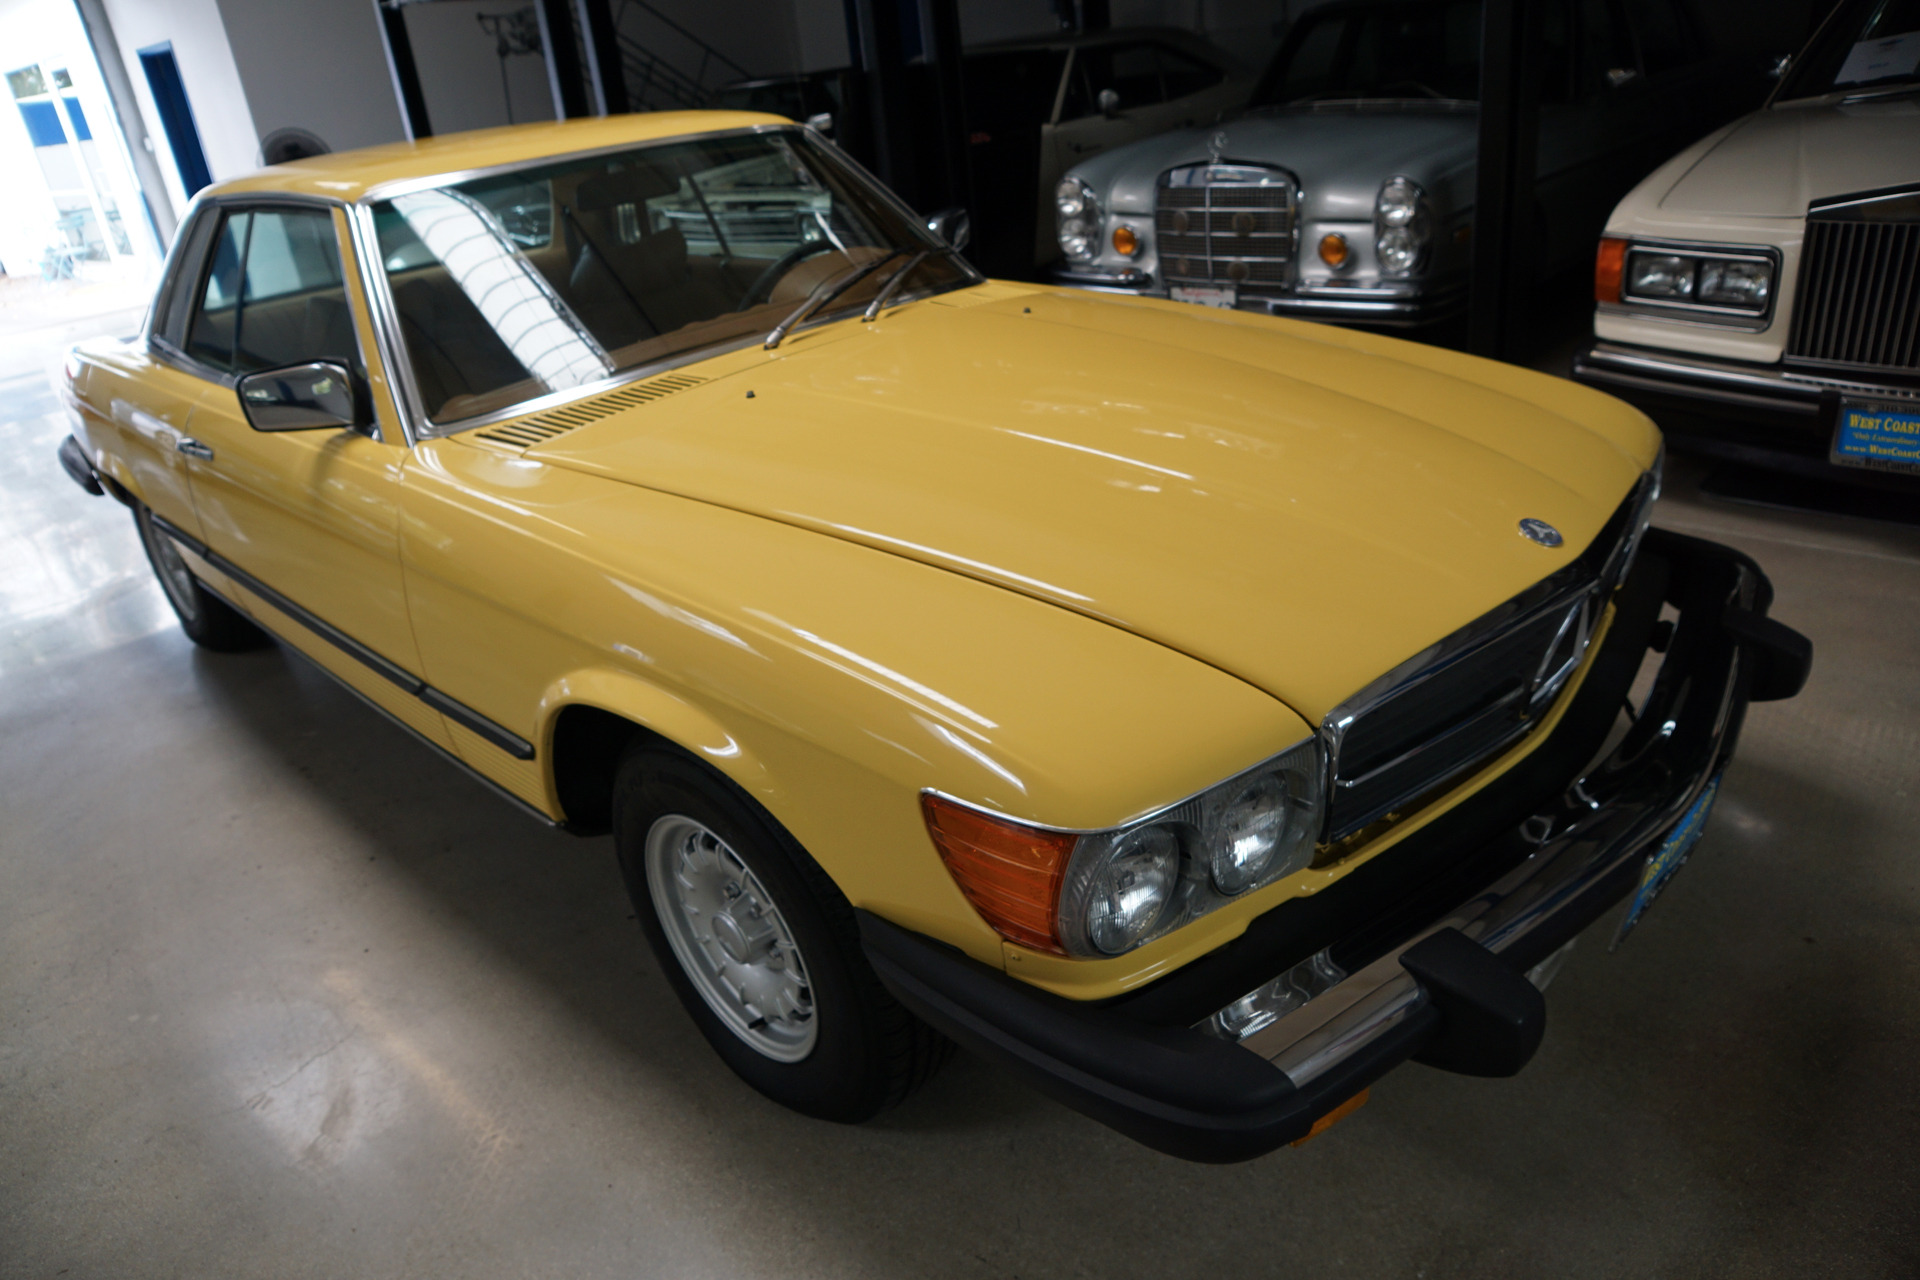 1977 mercedes benz 450slc stock 358 for sale near for Mercedes benz torrance